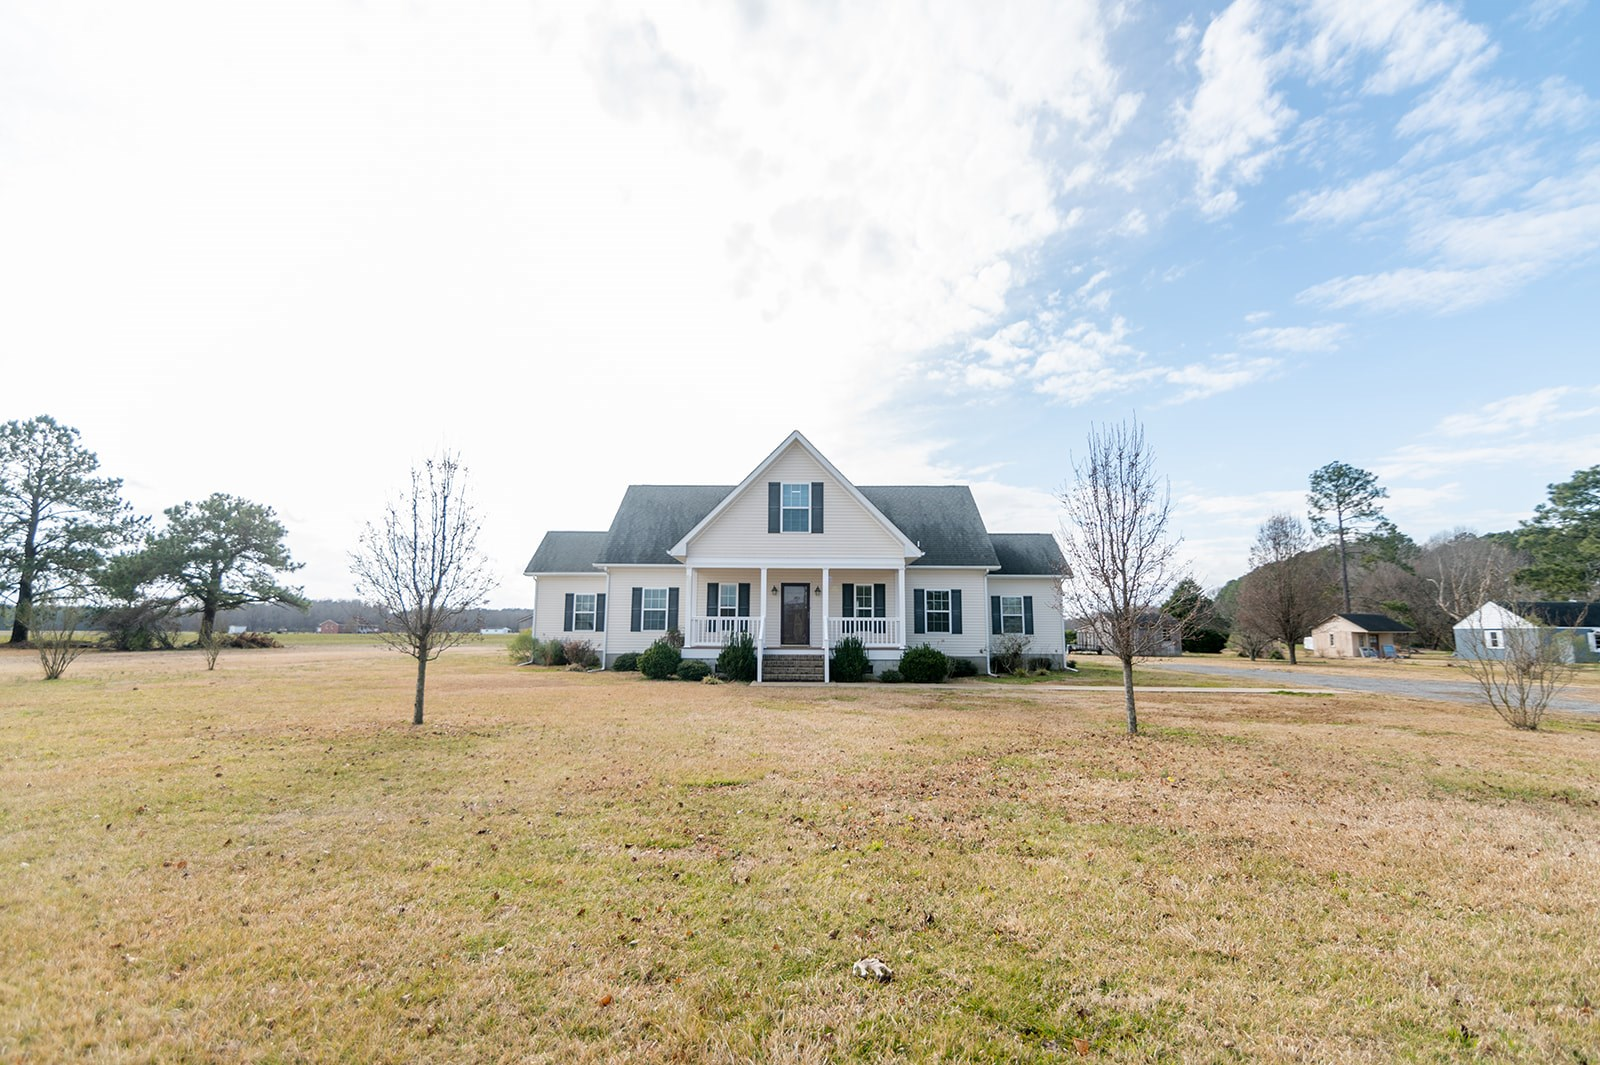 Singe Family  Home in Heart of Perquimans County Farm Land